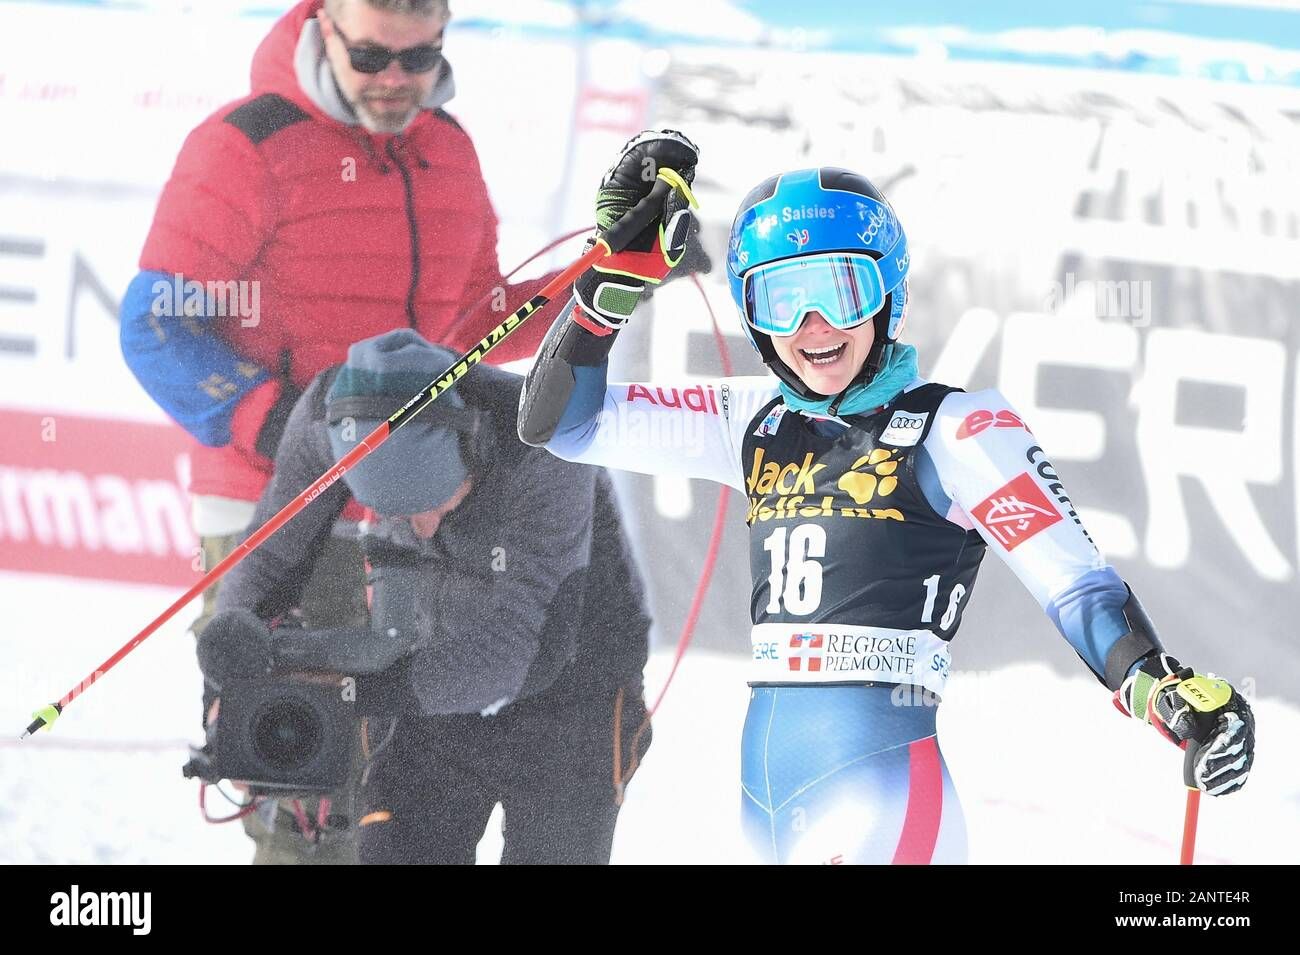 Sestriere, Italy, 19 Jan 2020, direz clara (fra) 1th classified during SKY World Cup -  Parallel Giant Slalom Women - Ski - Credit: LPS/Danilo Vigo/Alamy Live News Stock Photo